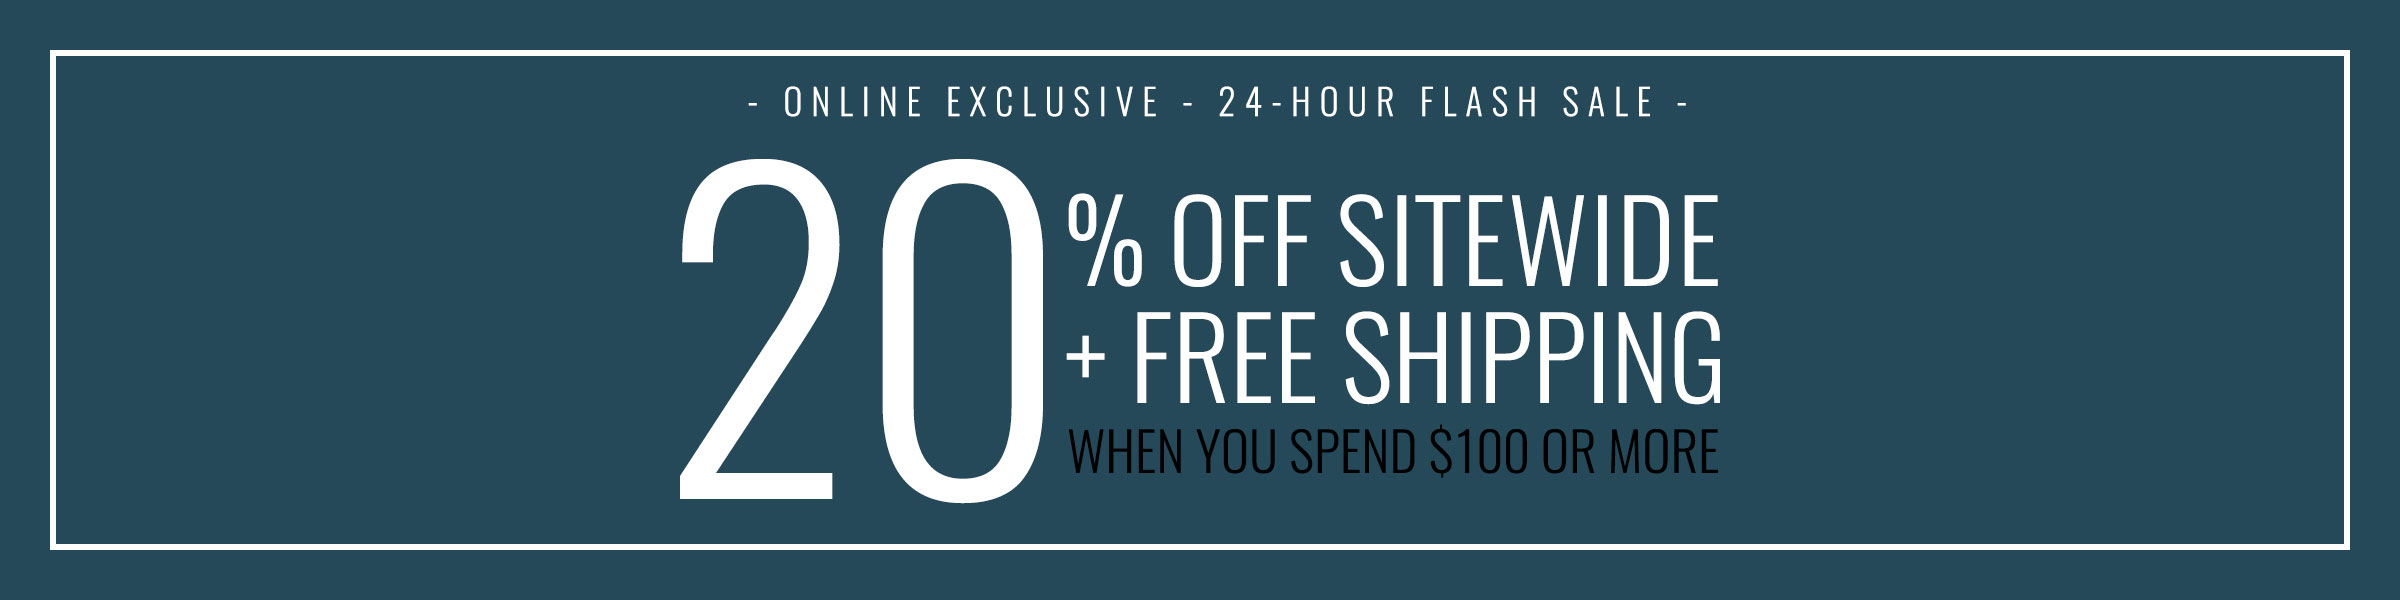 Get 20% off already reduced merchandise + free shipping